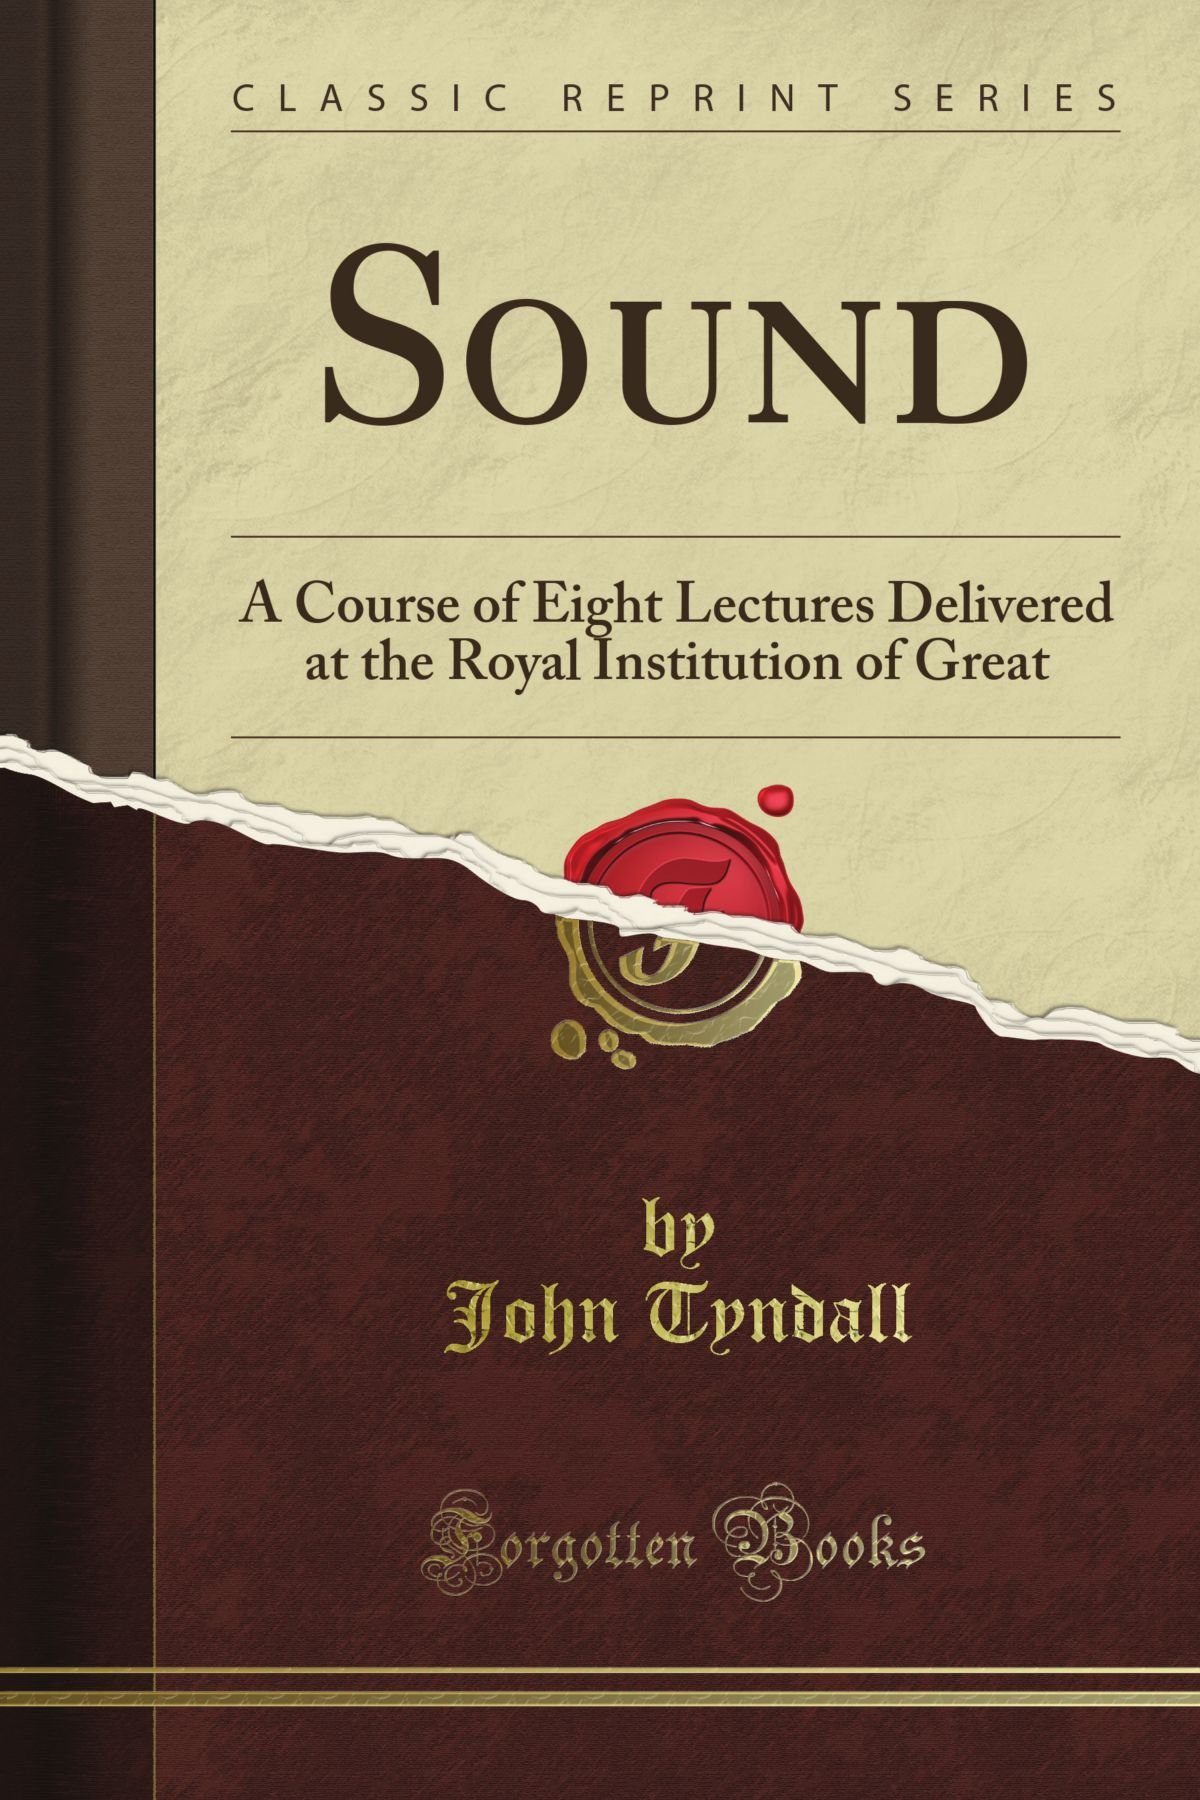 Sound: A Course of Eight Lectures Delivered at the Royal Institution of Great (Classic Reprint) pdf epub